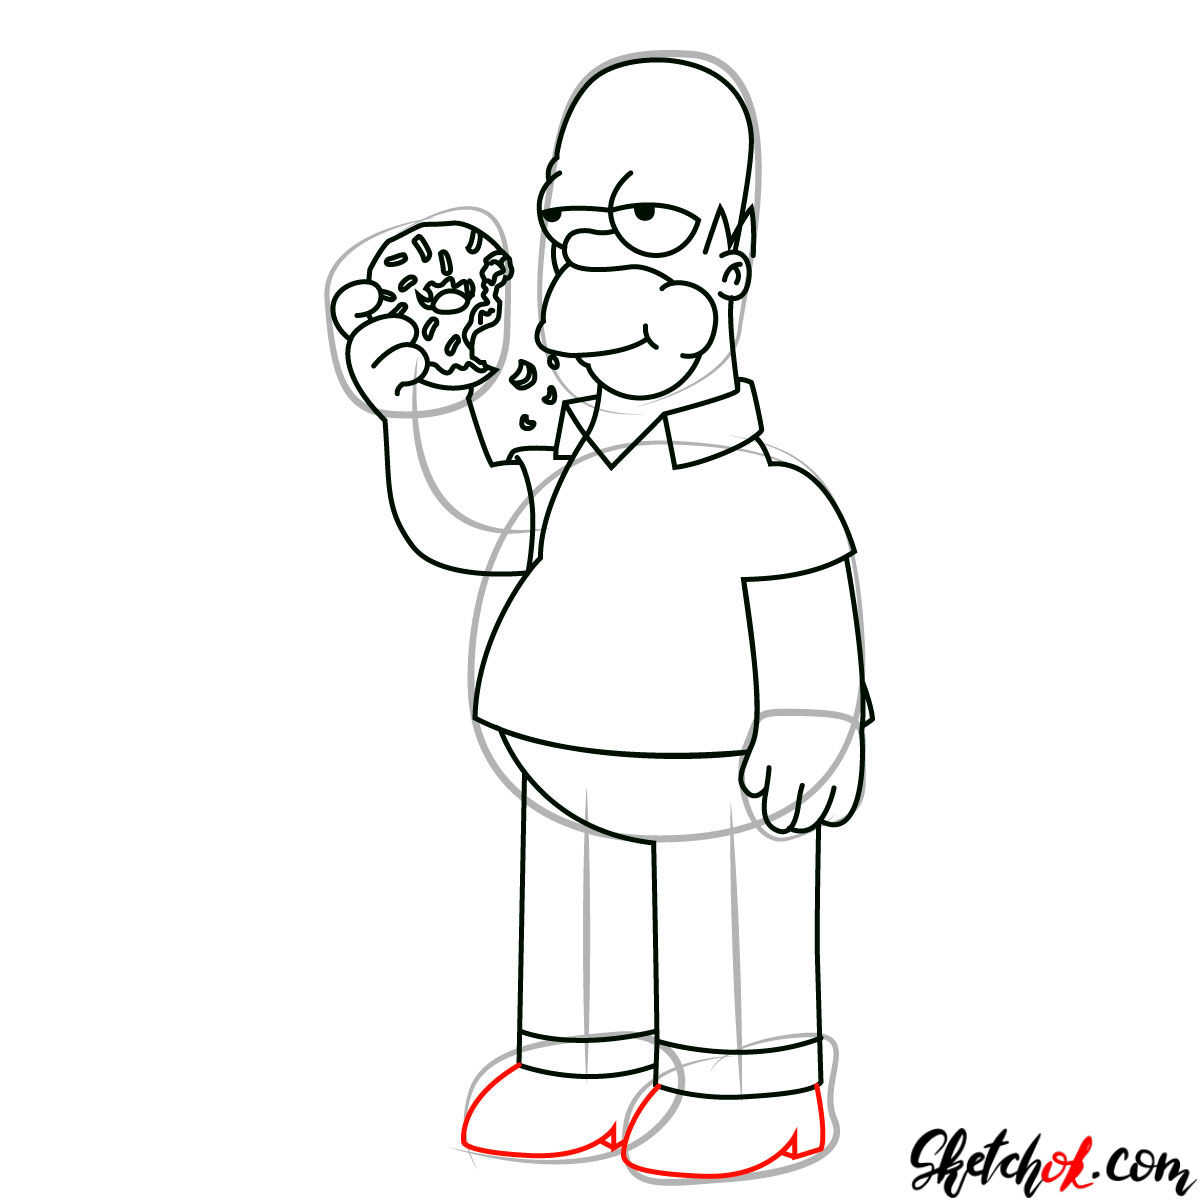 How to draw Homer Simpson eating a donut - step 10